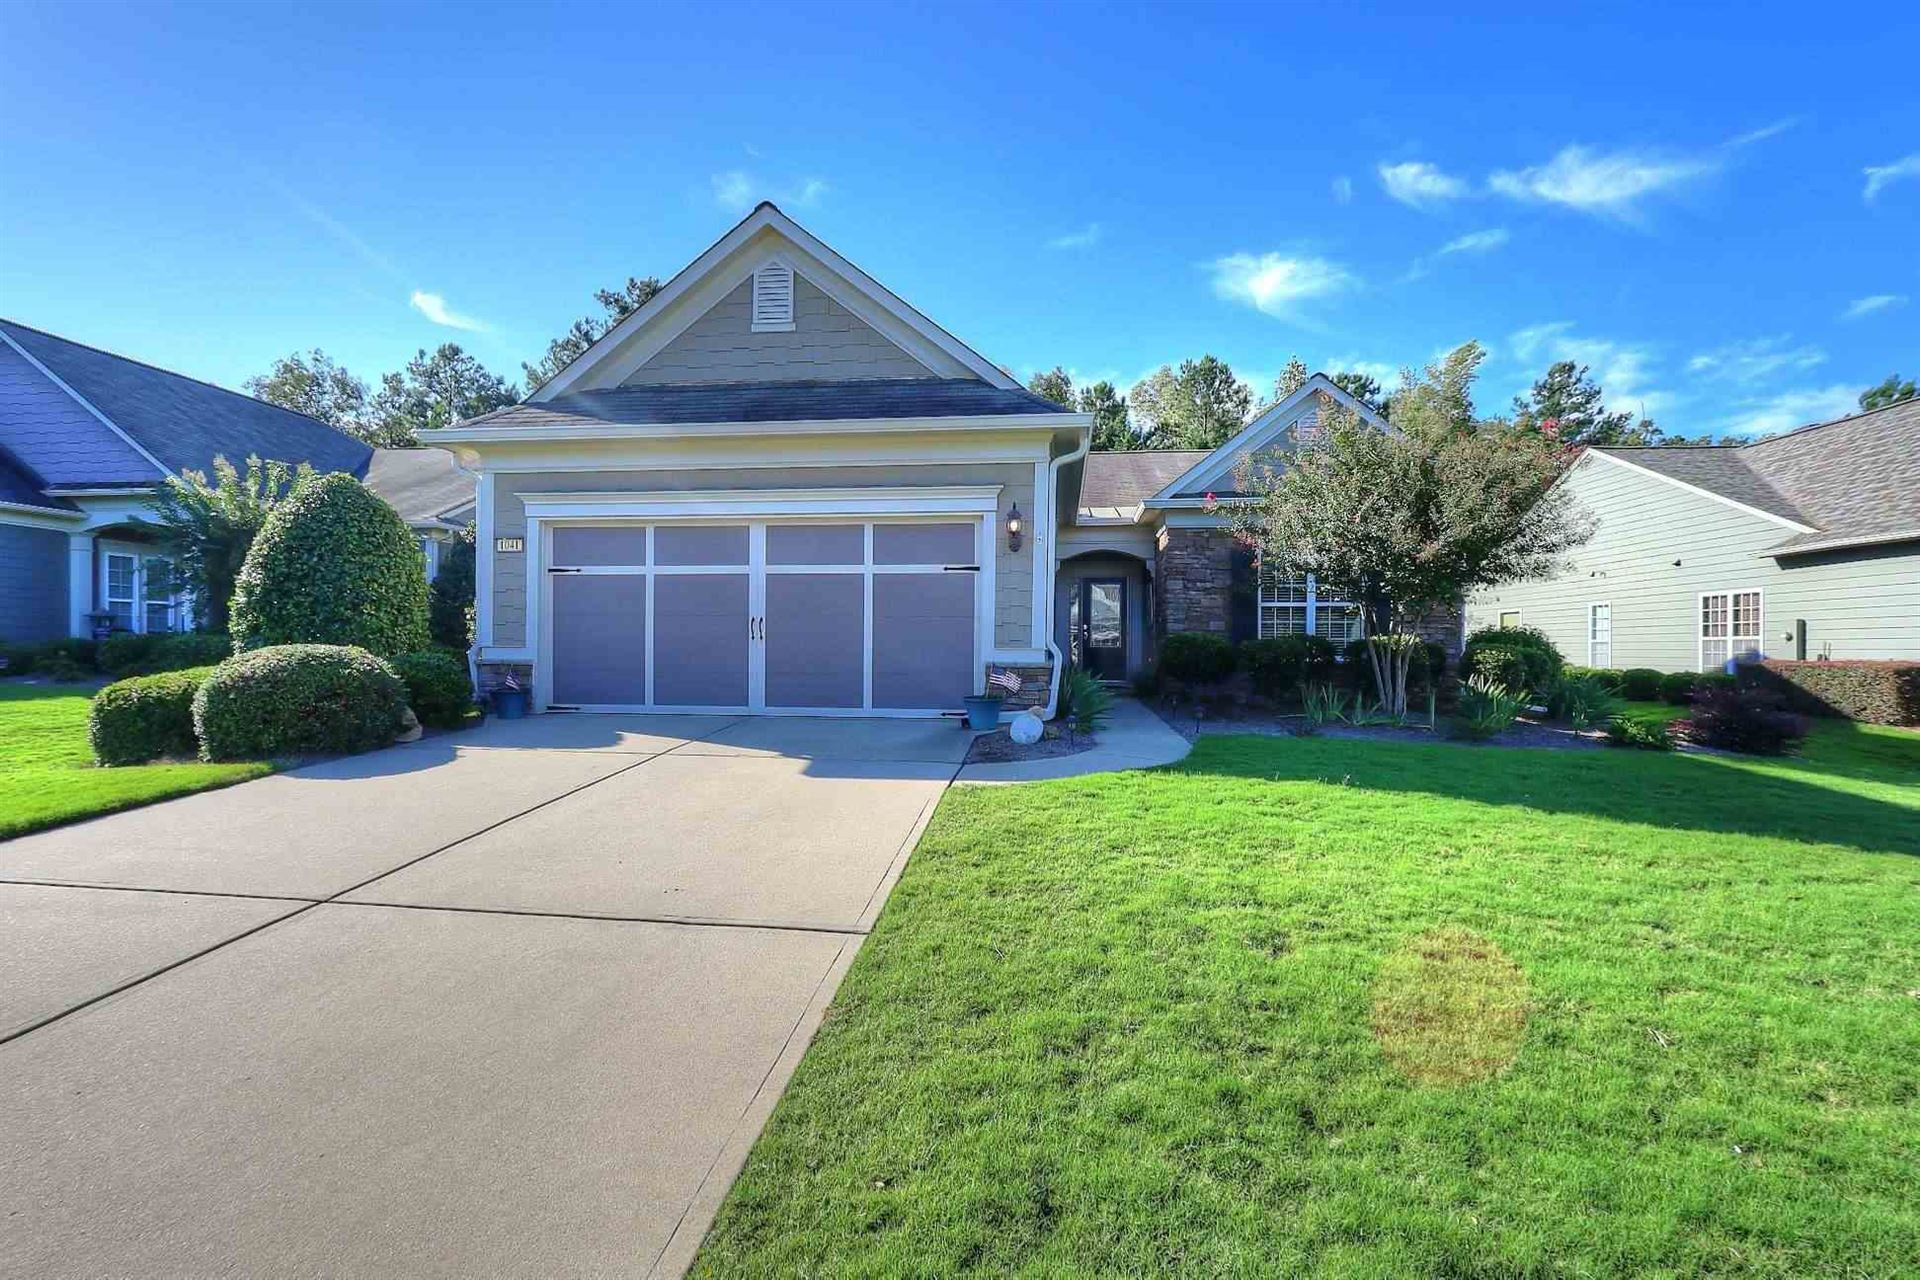 1041 Spring Station Rd, Greensboro, GA 30642 - MLS#: 8861430